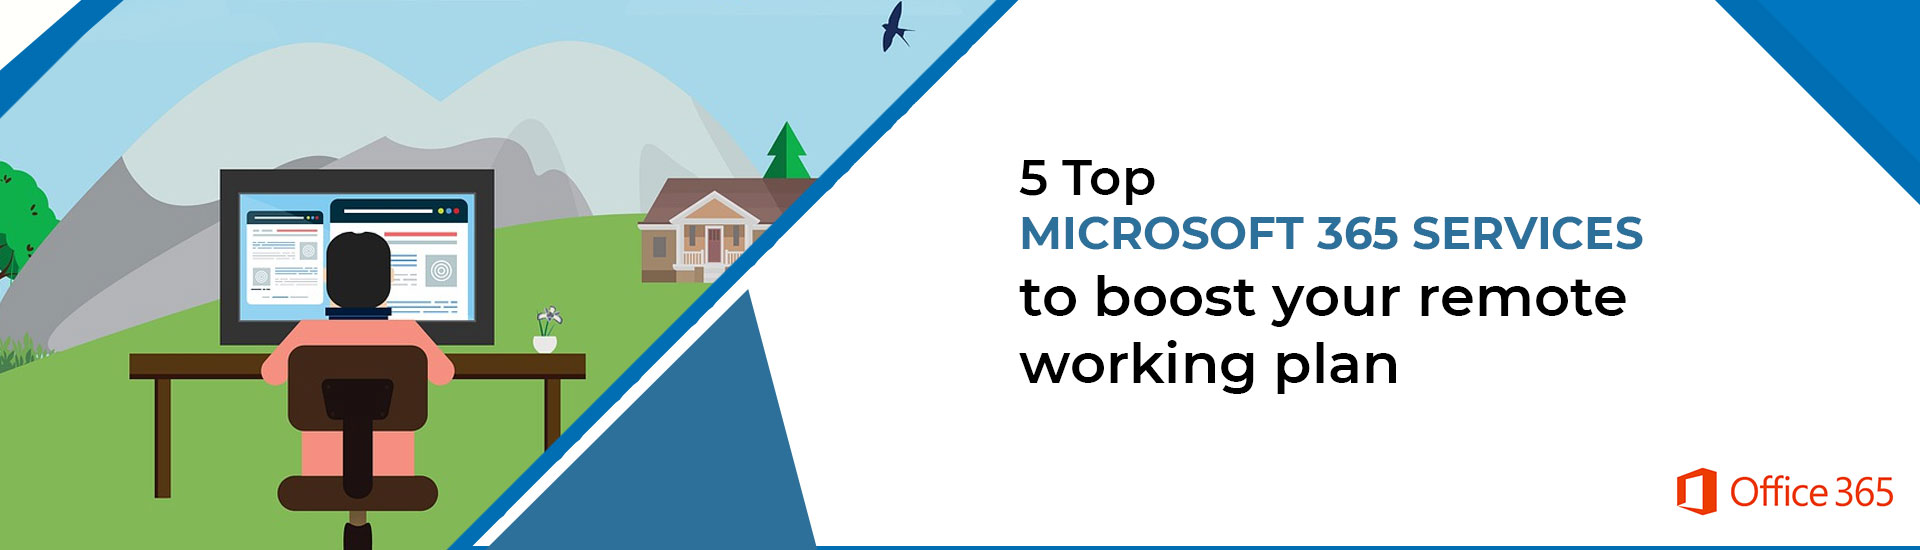 5 Top Microsoft 365 services and tools to boost your remote working plan